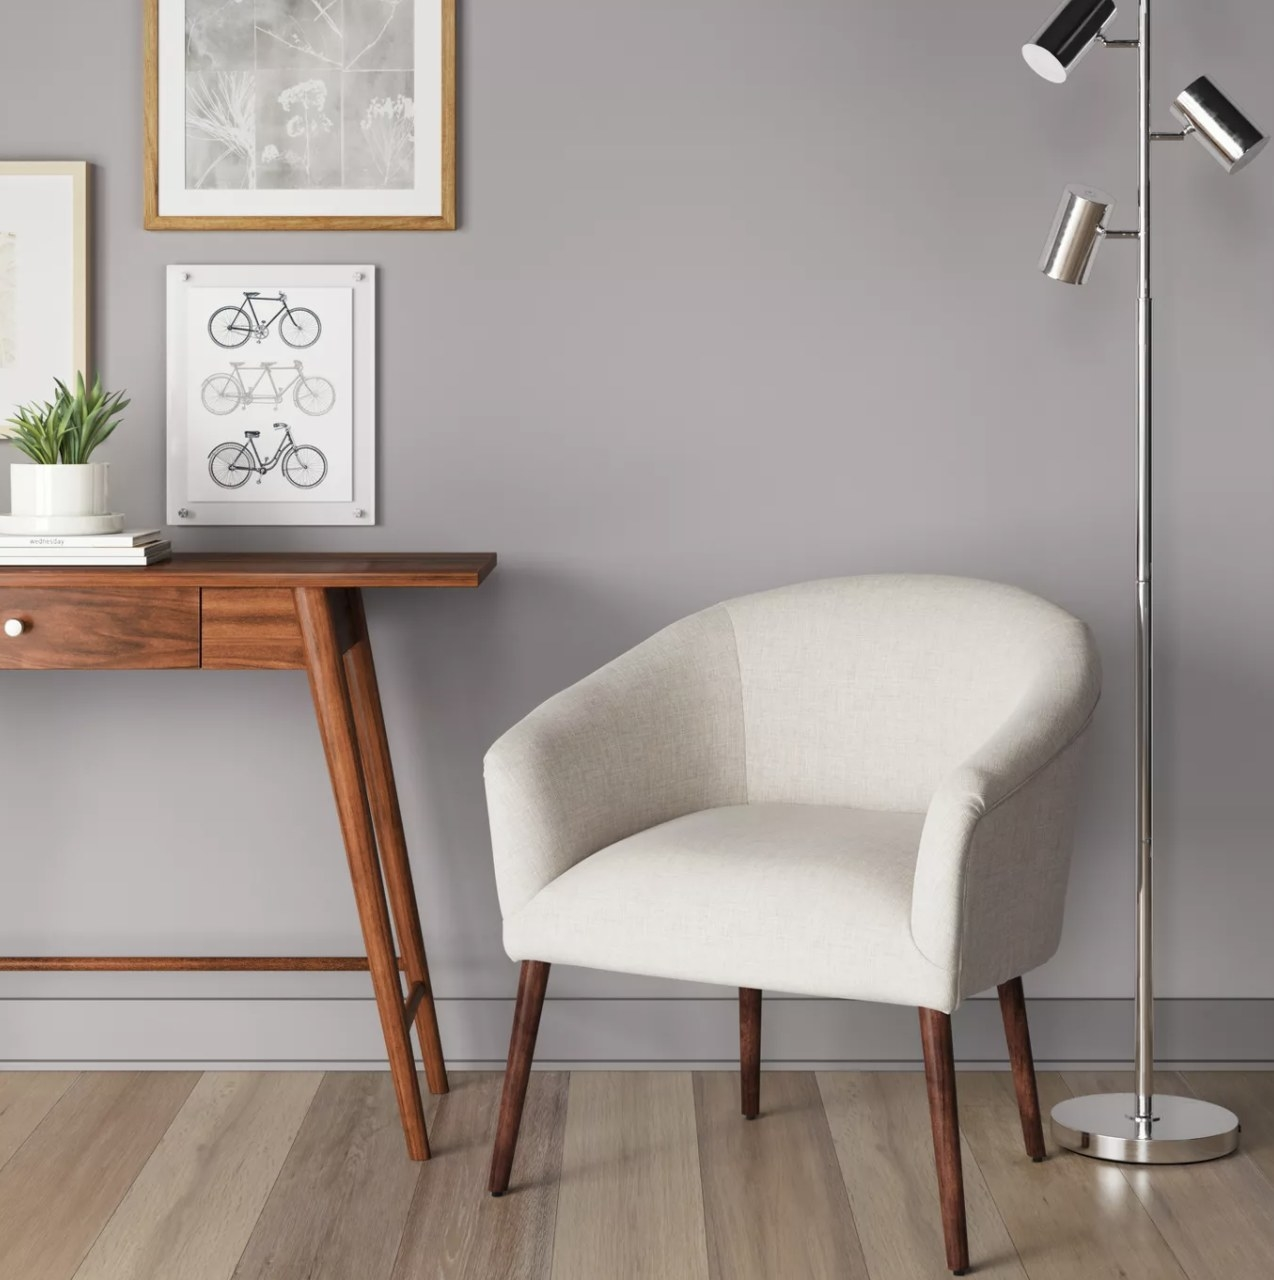 The white chair with wood legs